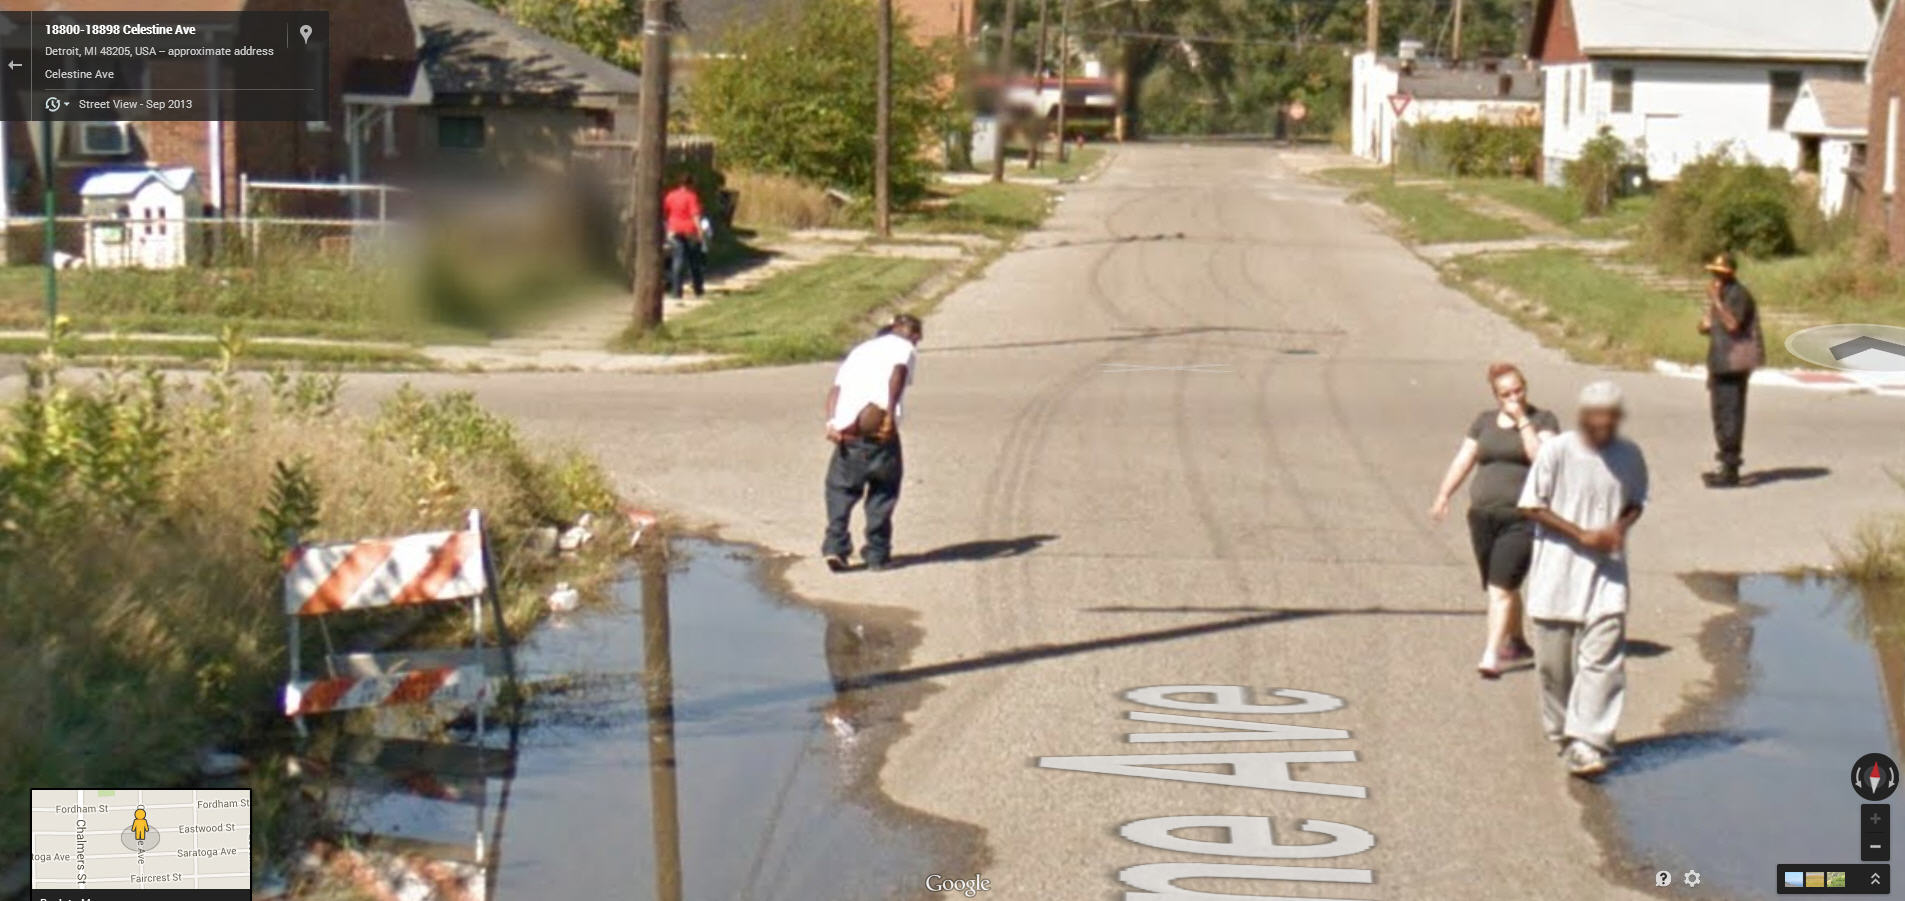 Why not Moon Google Street View